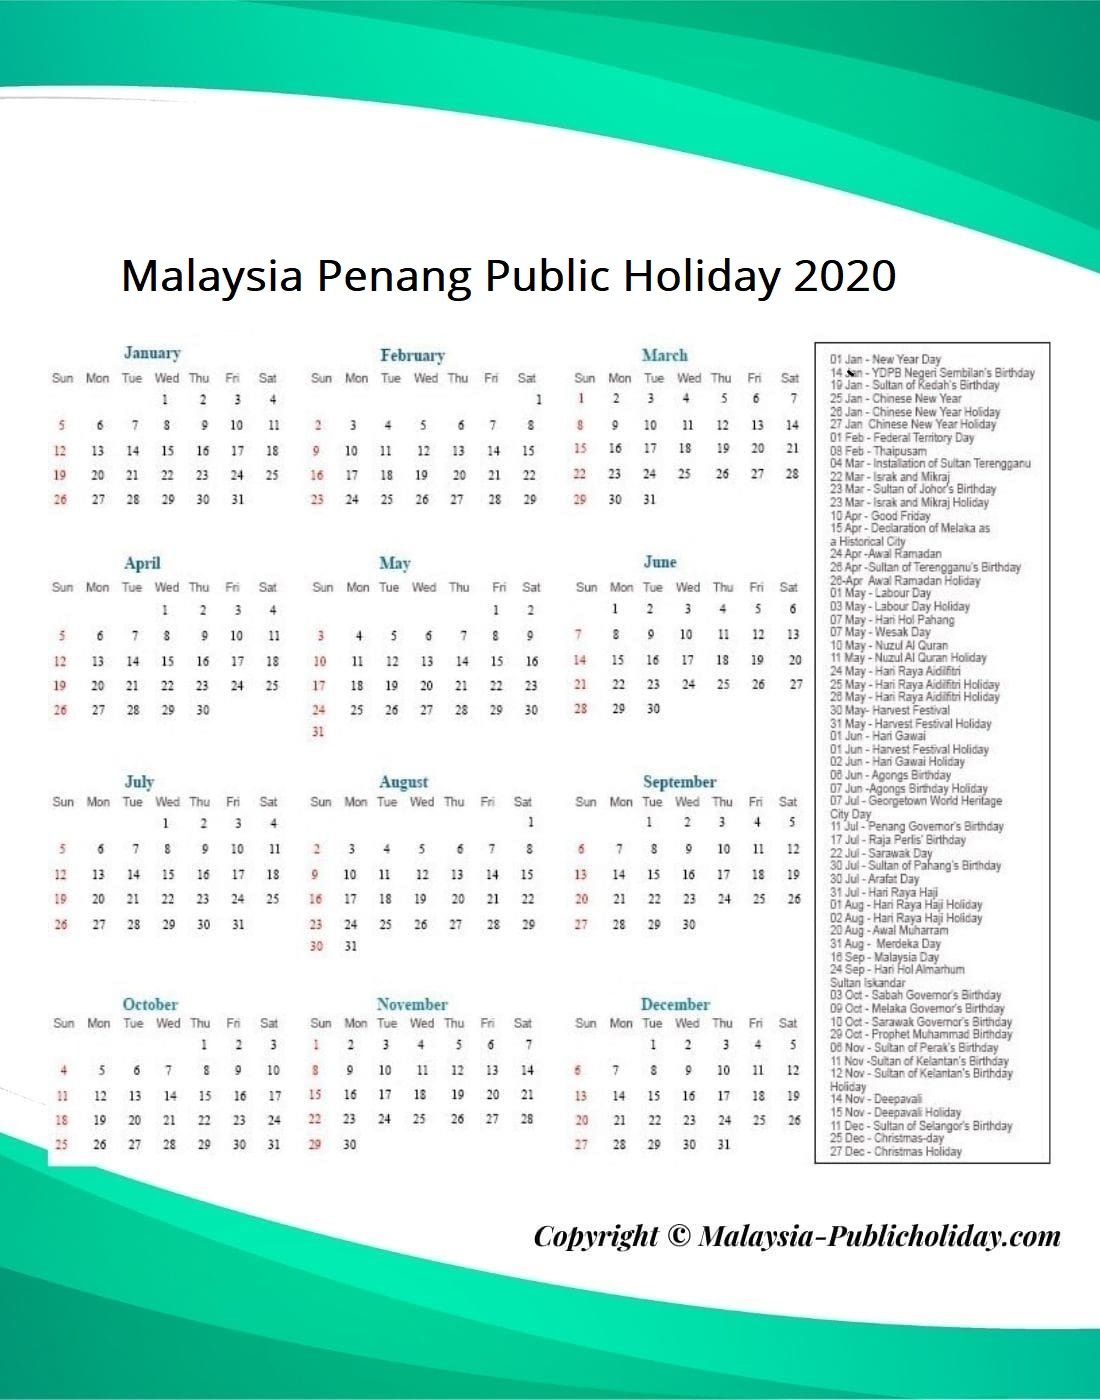 Penang Public Holiday 2020